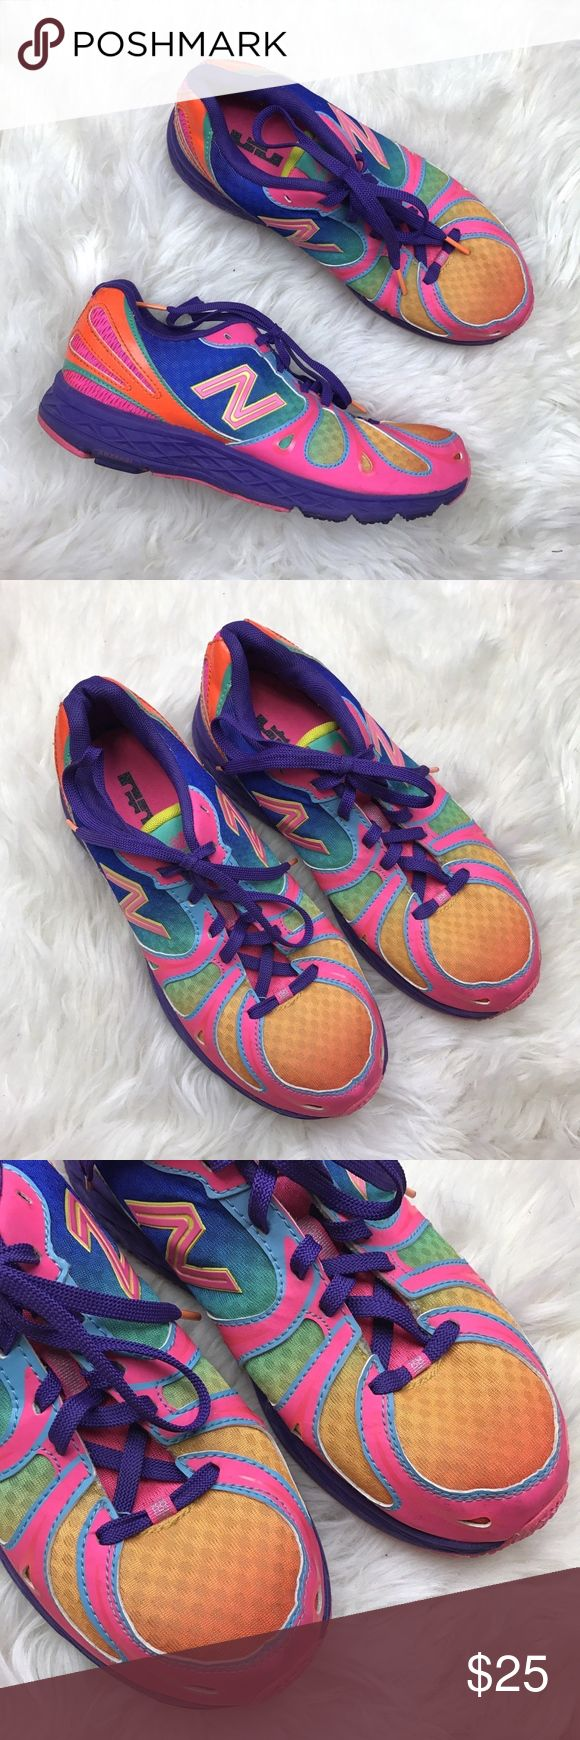 New Balance 890v3 Rainbow Running Sneakers KJ890GRG - This pair is labeled girls size 6.5 which is comparable to women's size 8.  Youth US 6.5, UK 6, Eu 39. Great condition. Minor markings on pink, light wear on bottom sole. New Balance Shoes Athletic Shoes